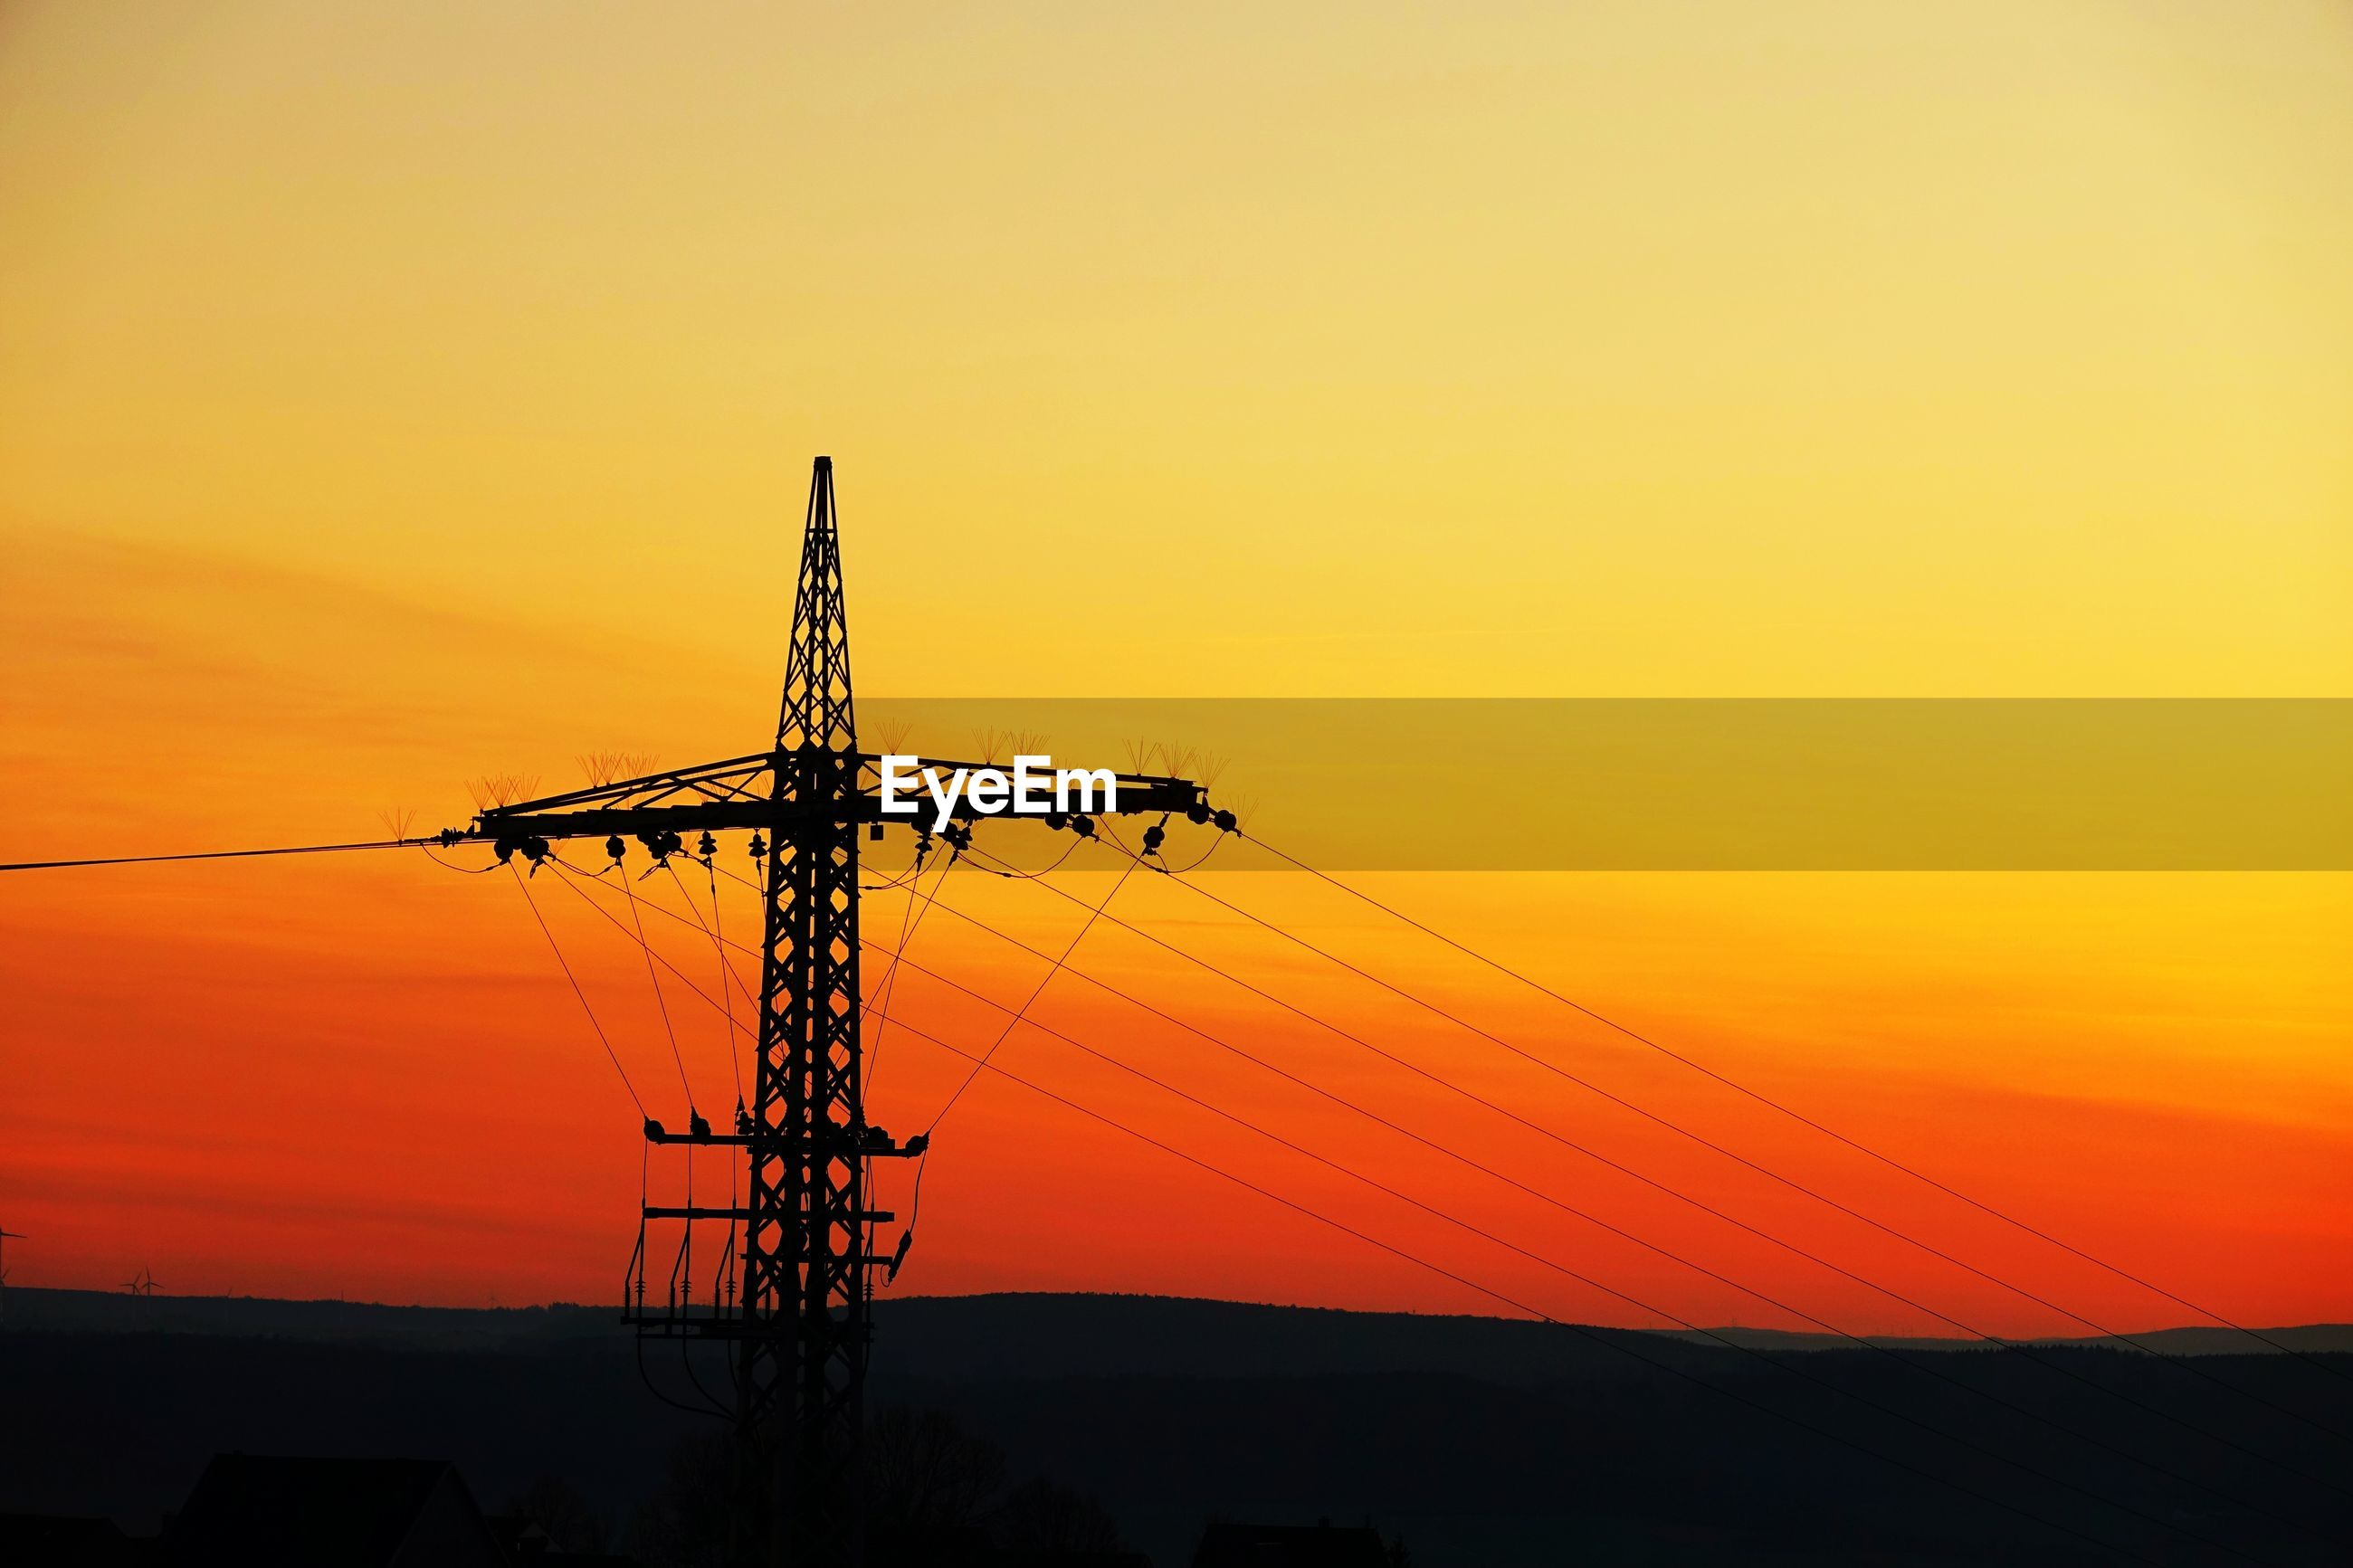 SILHOUETTE OF ELECTRICITY PYLON AGAINST ROMANTIC SKY AT SUNSET